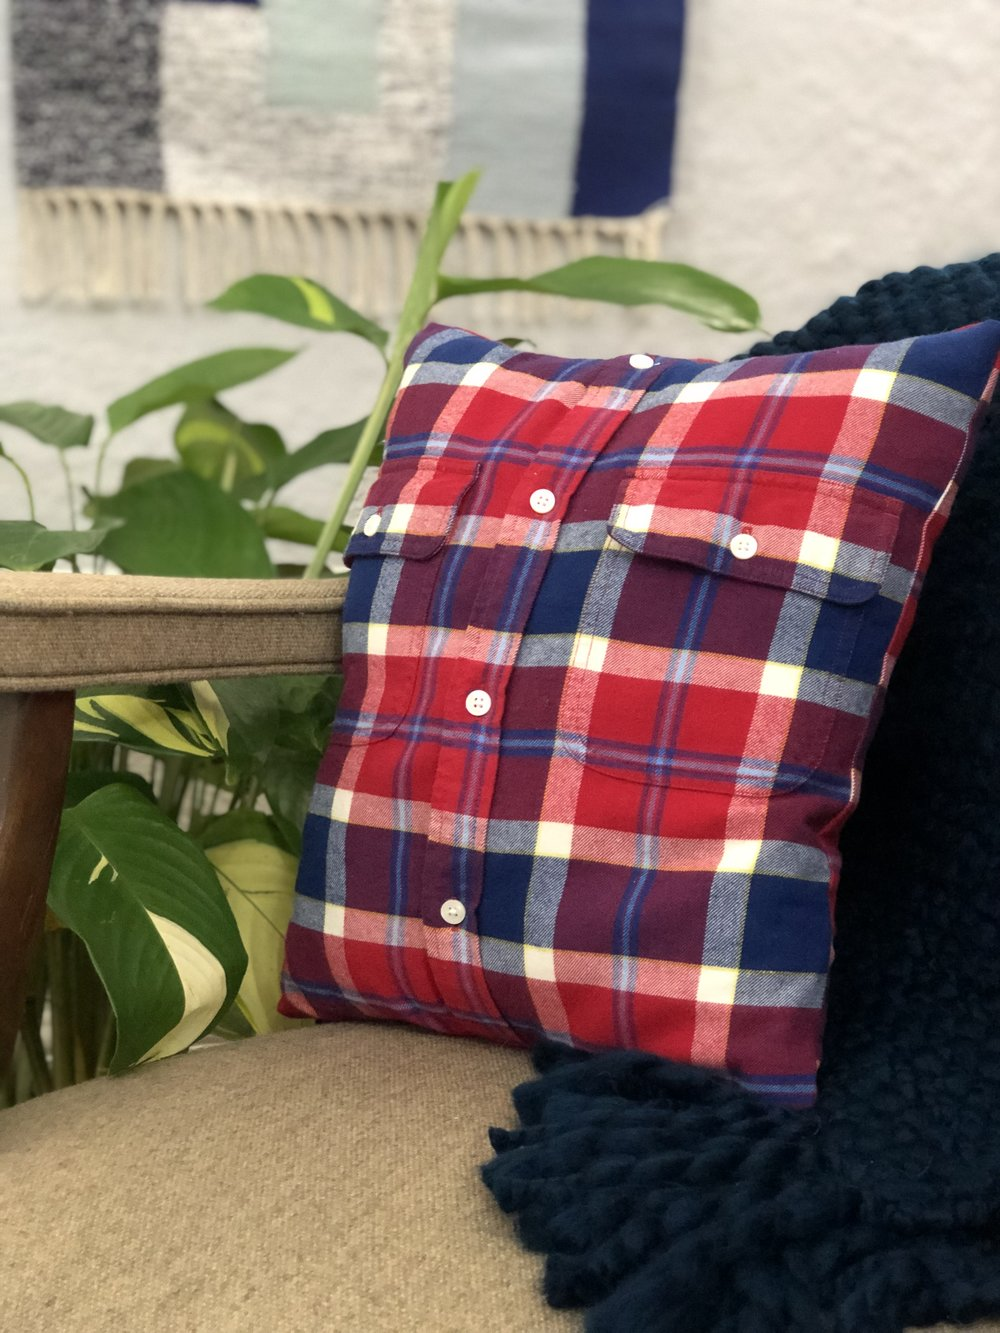 DIY upcycled no sew pillow cover. #flannelshirt #buttondown #keepsake #easydiy #nosew #heatbond #easycraft